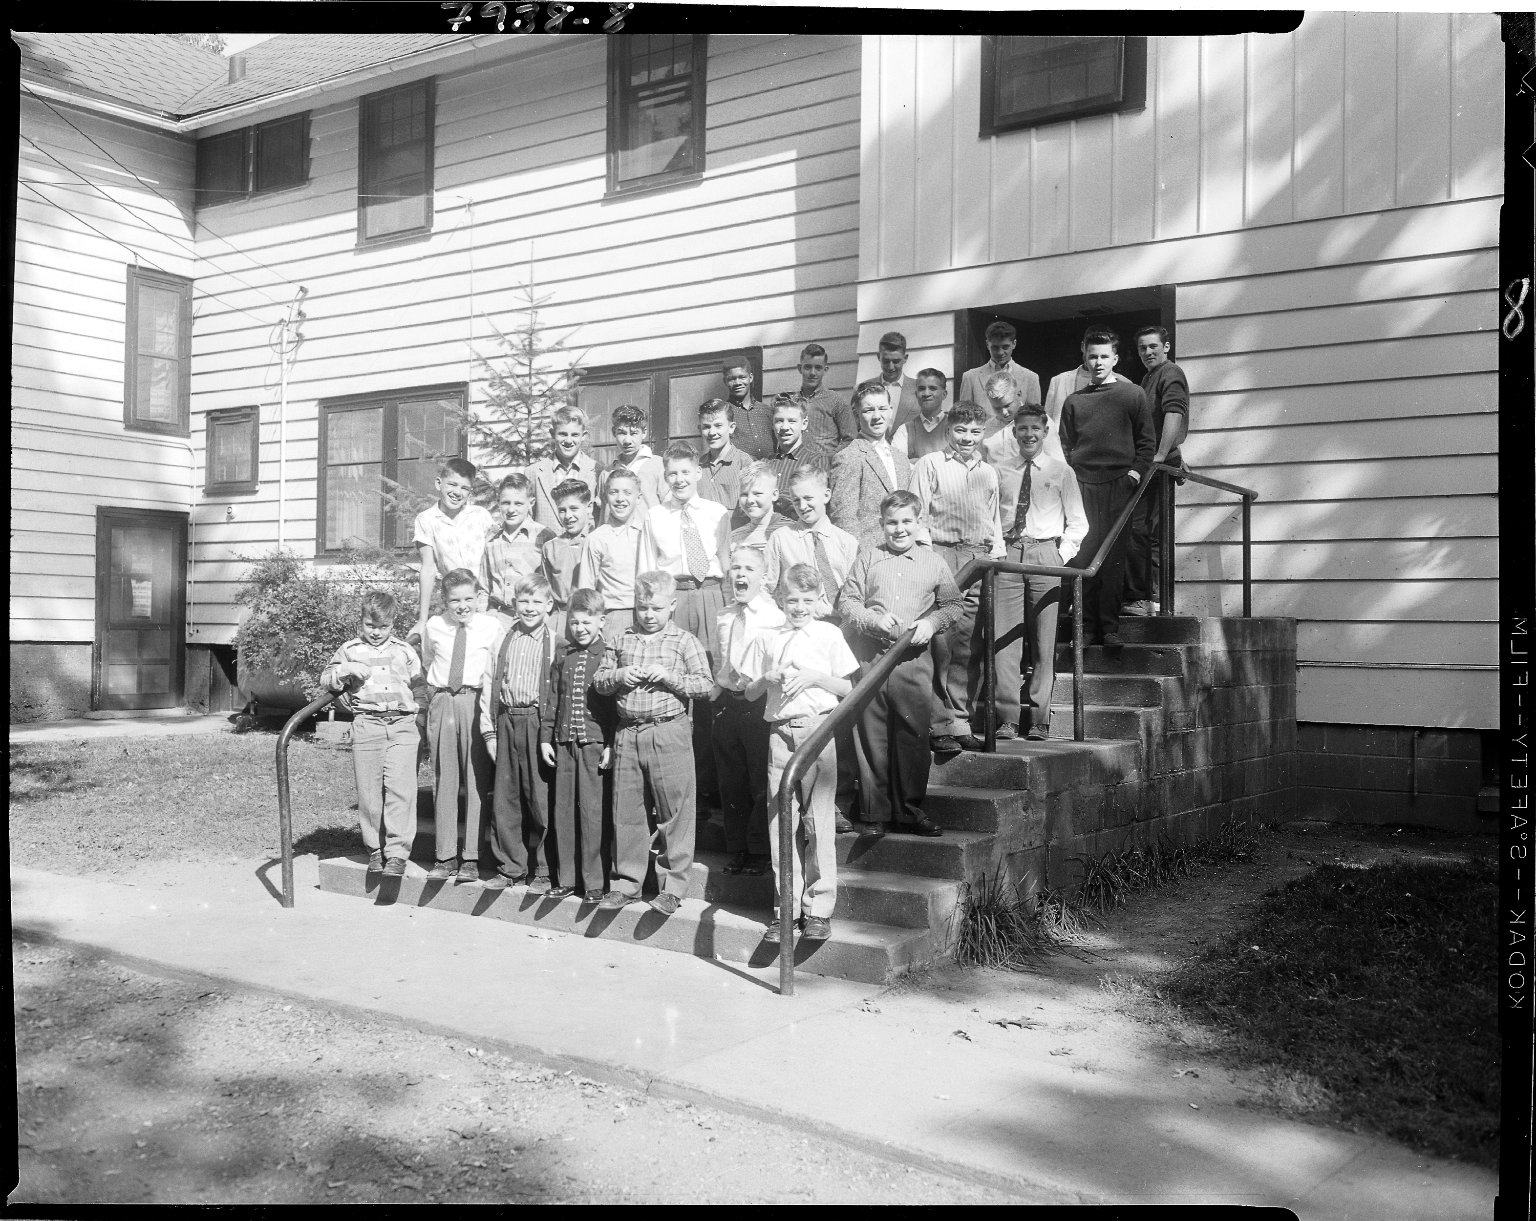 Lake Farm Boys Home, Kalamazoo, exterior, group portrait of boys